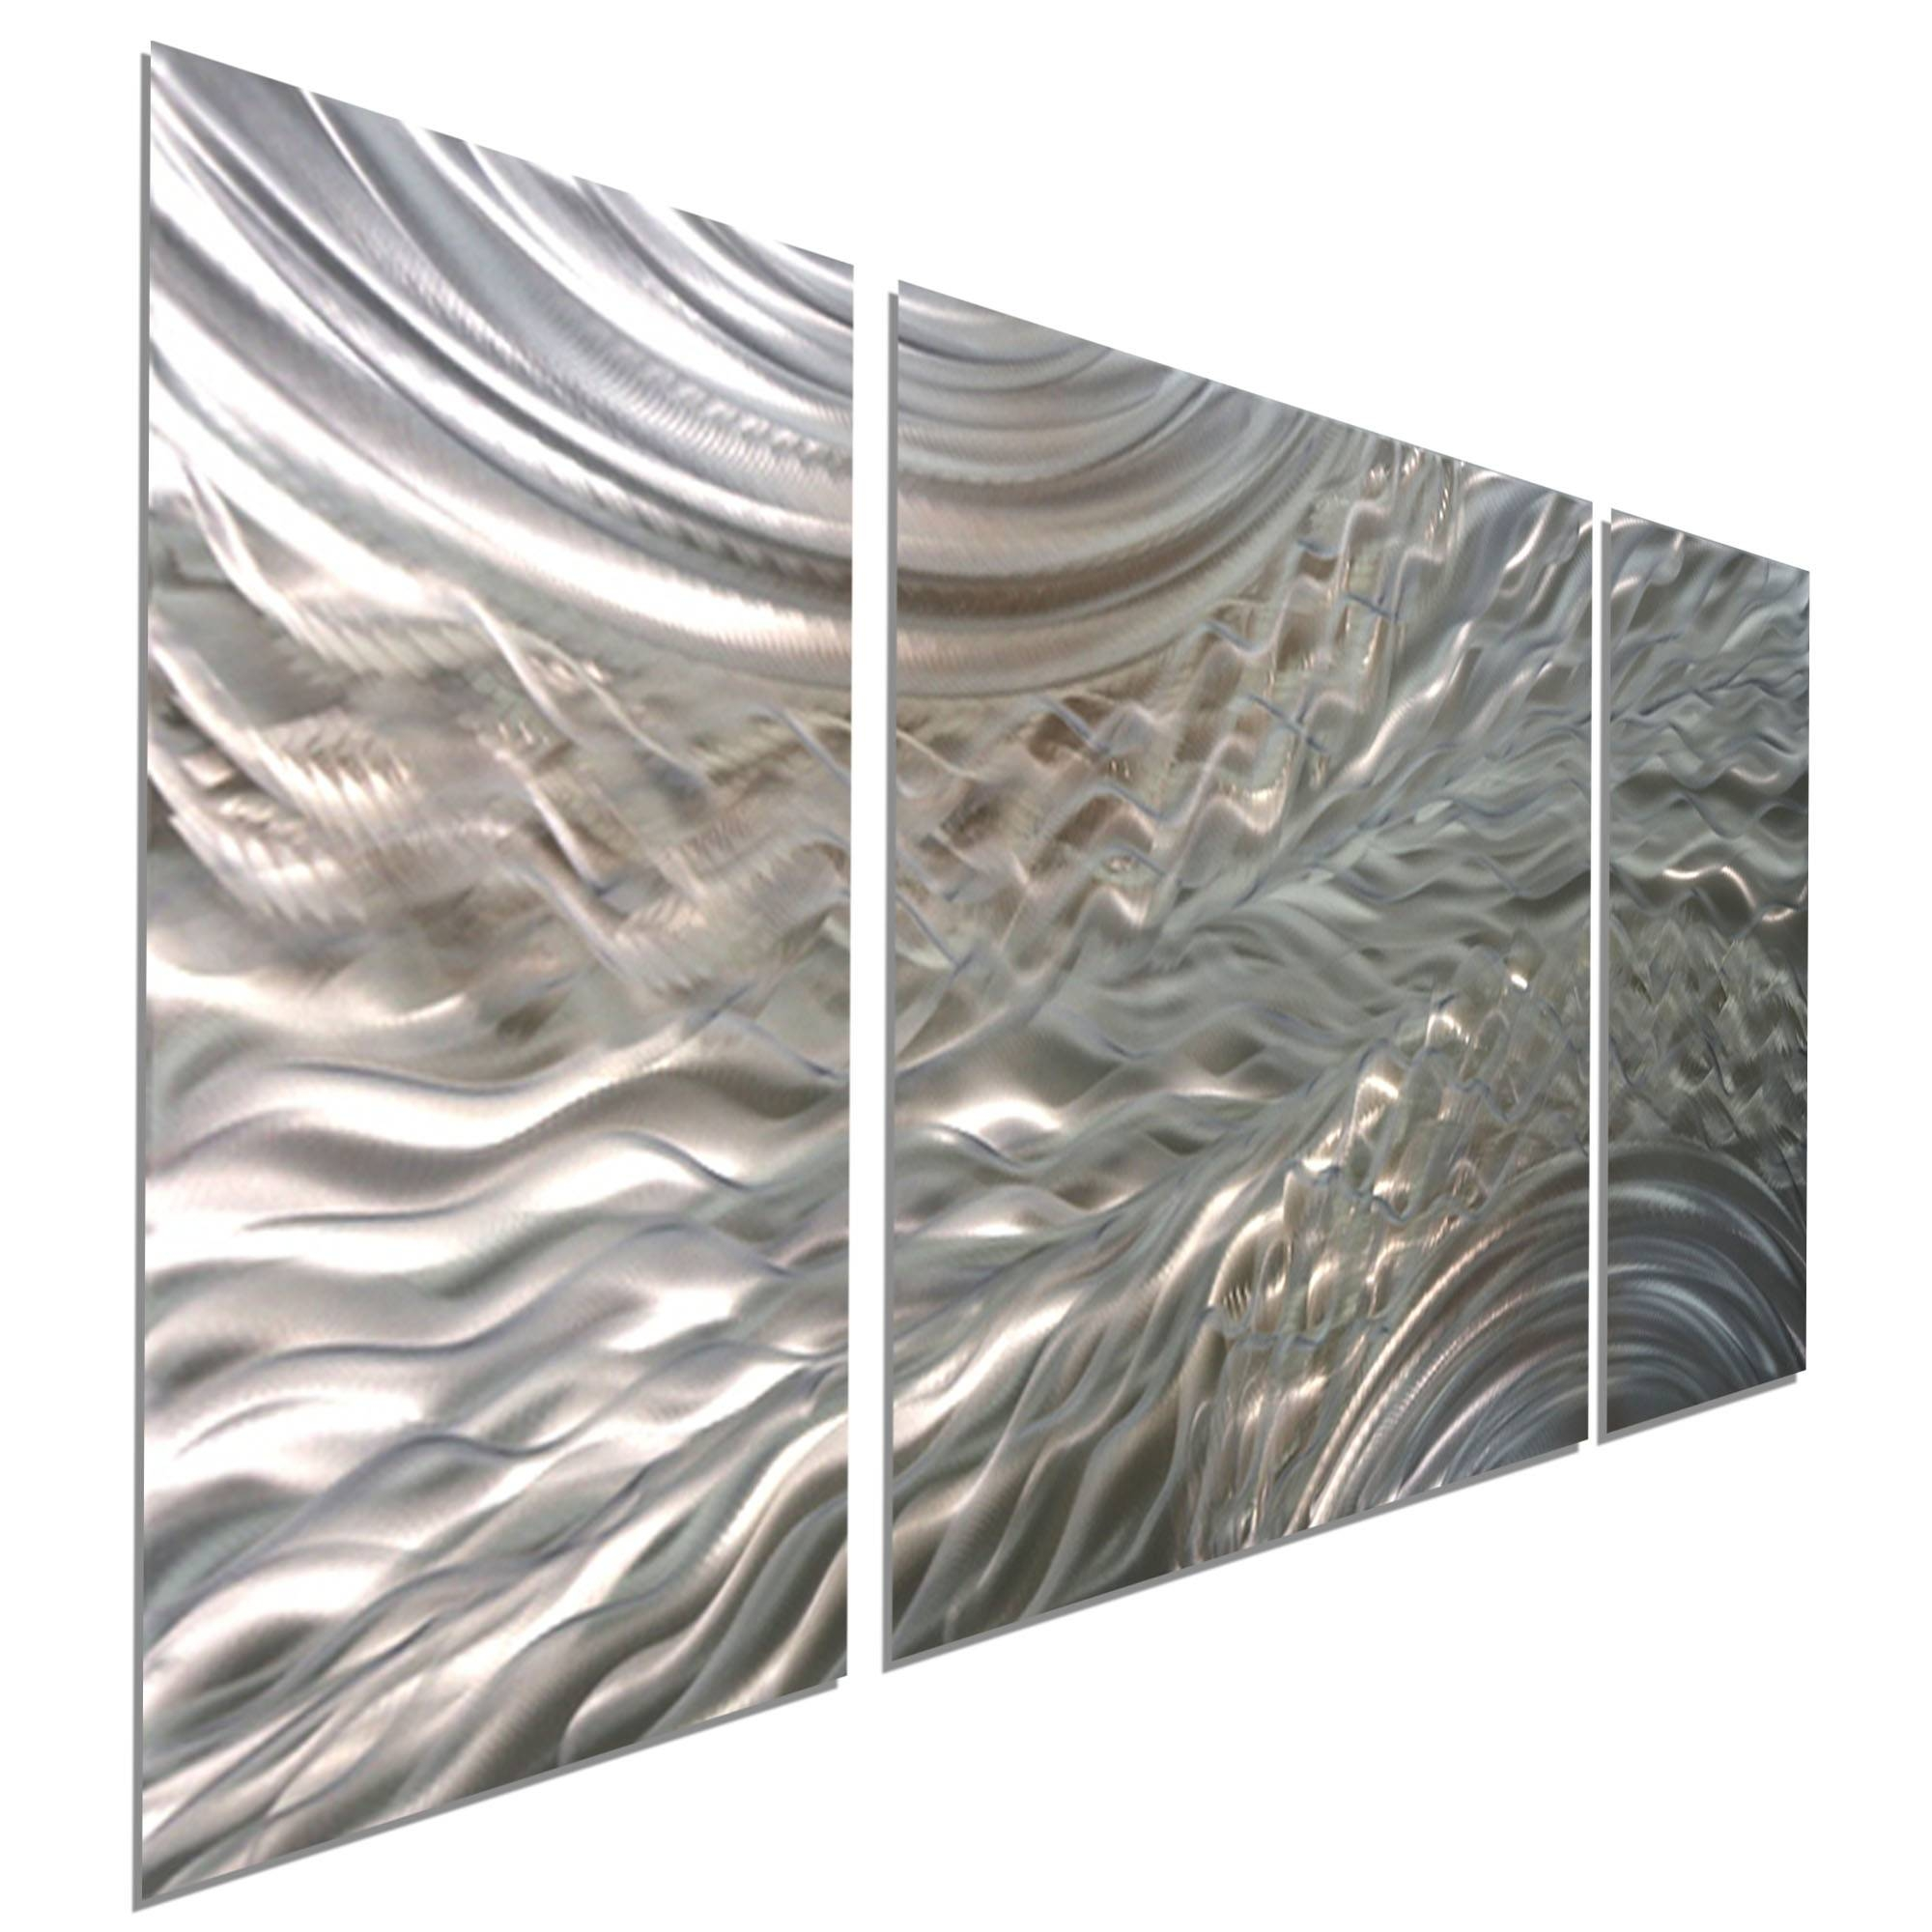 Metal Wall Art | Handmade Metal Art, Panel Art & Wall Sculptures Regarding Most Recently Released Hammered Metal Wall Art (View 12 of 20)